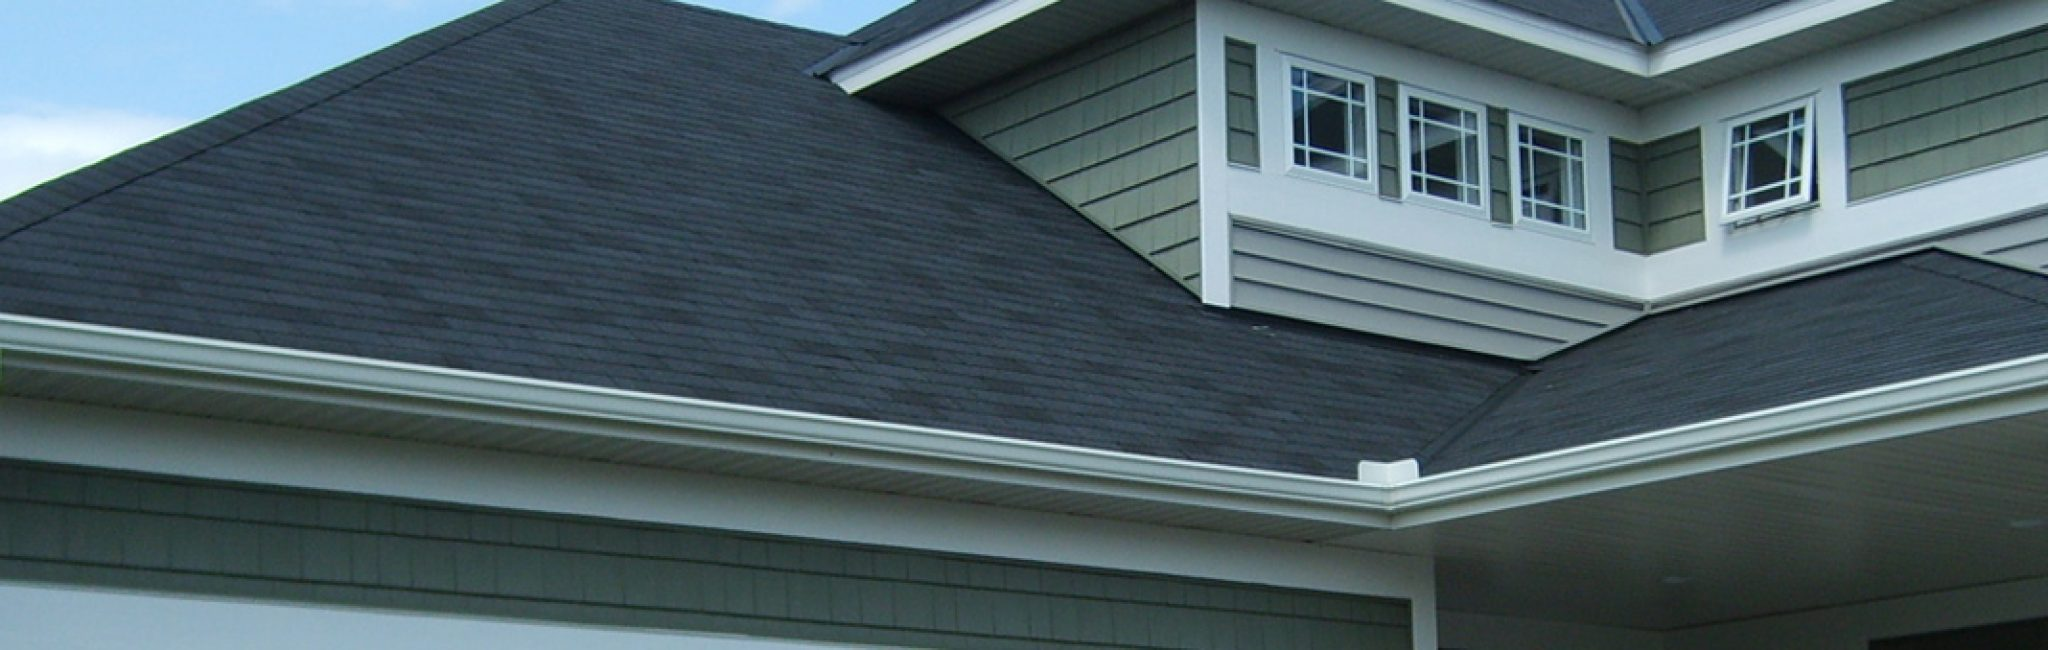 gutter-system-on-house mitre